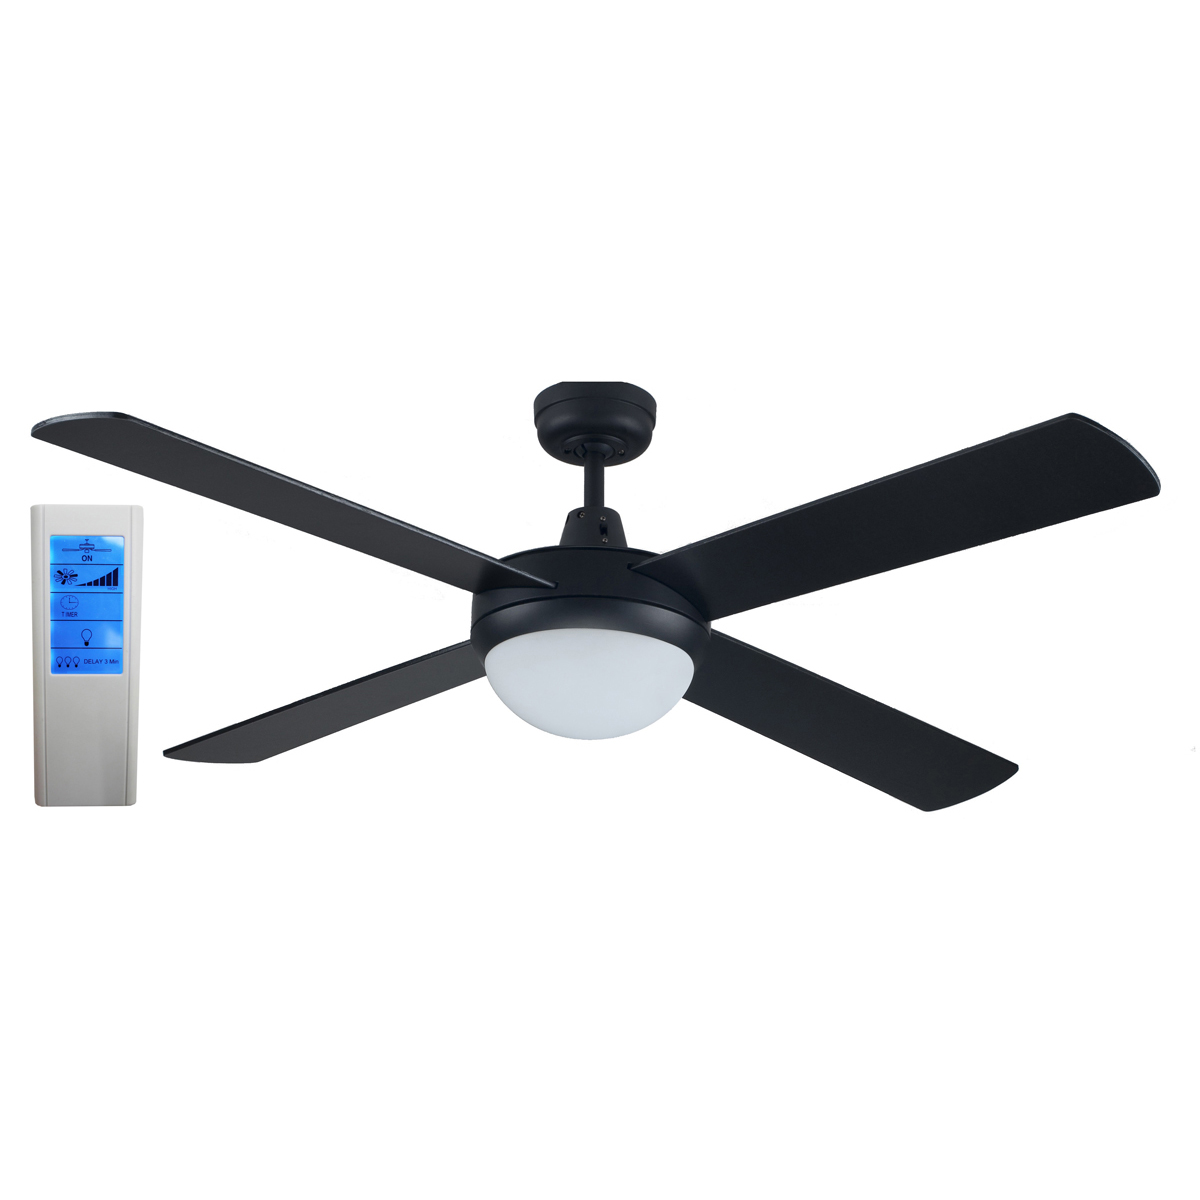 Rotor 52 Inch LED Ceiling Fan Black With 24W LED Light